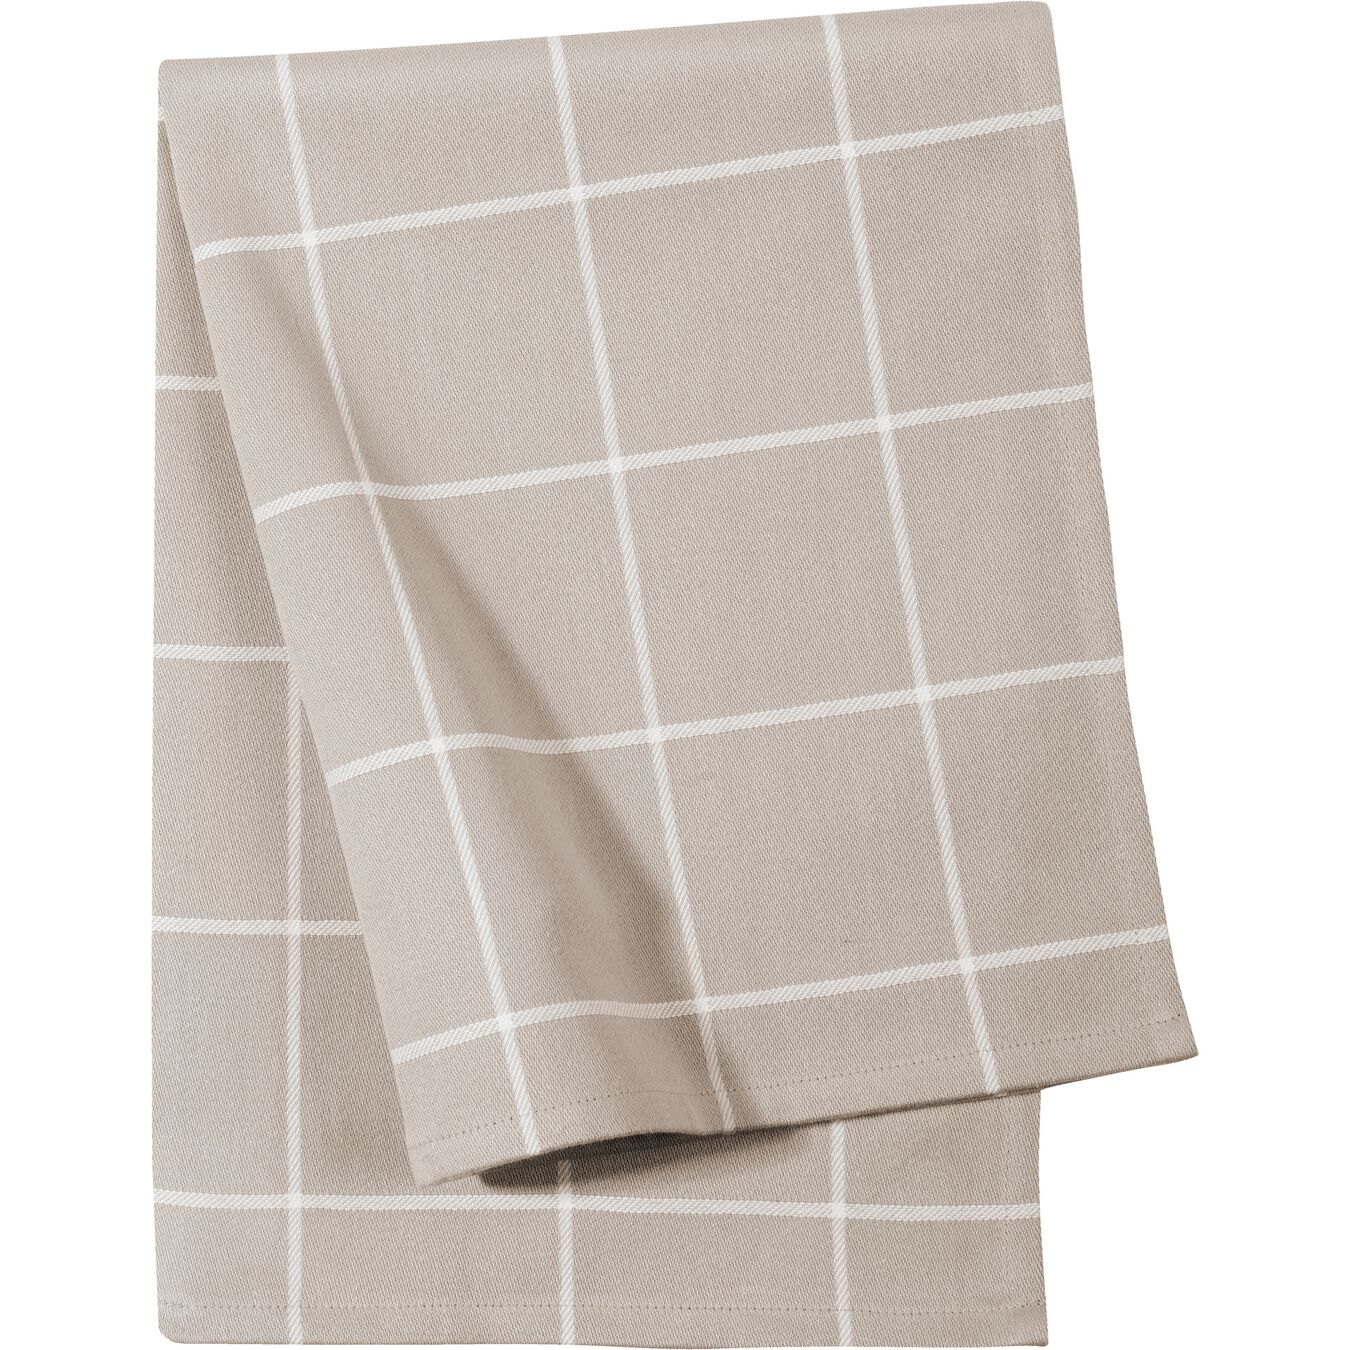 2 Piece Cotton Kitchen towel set checkered, taupe,,large 7